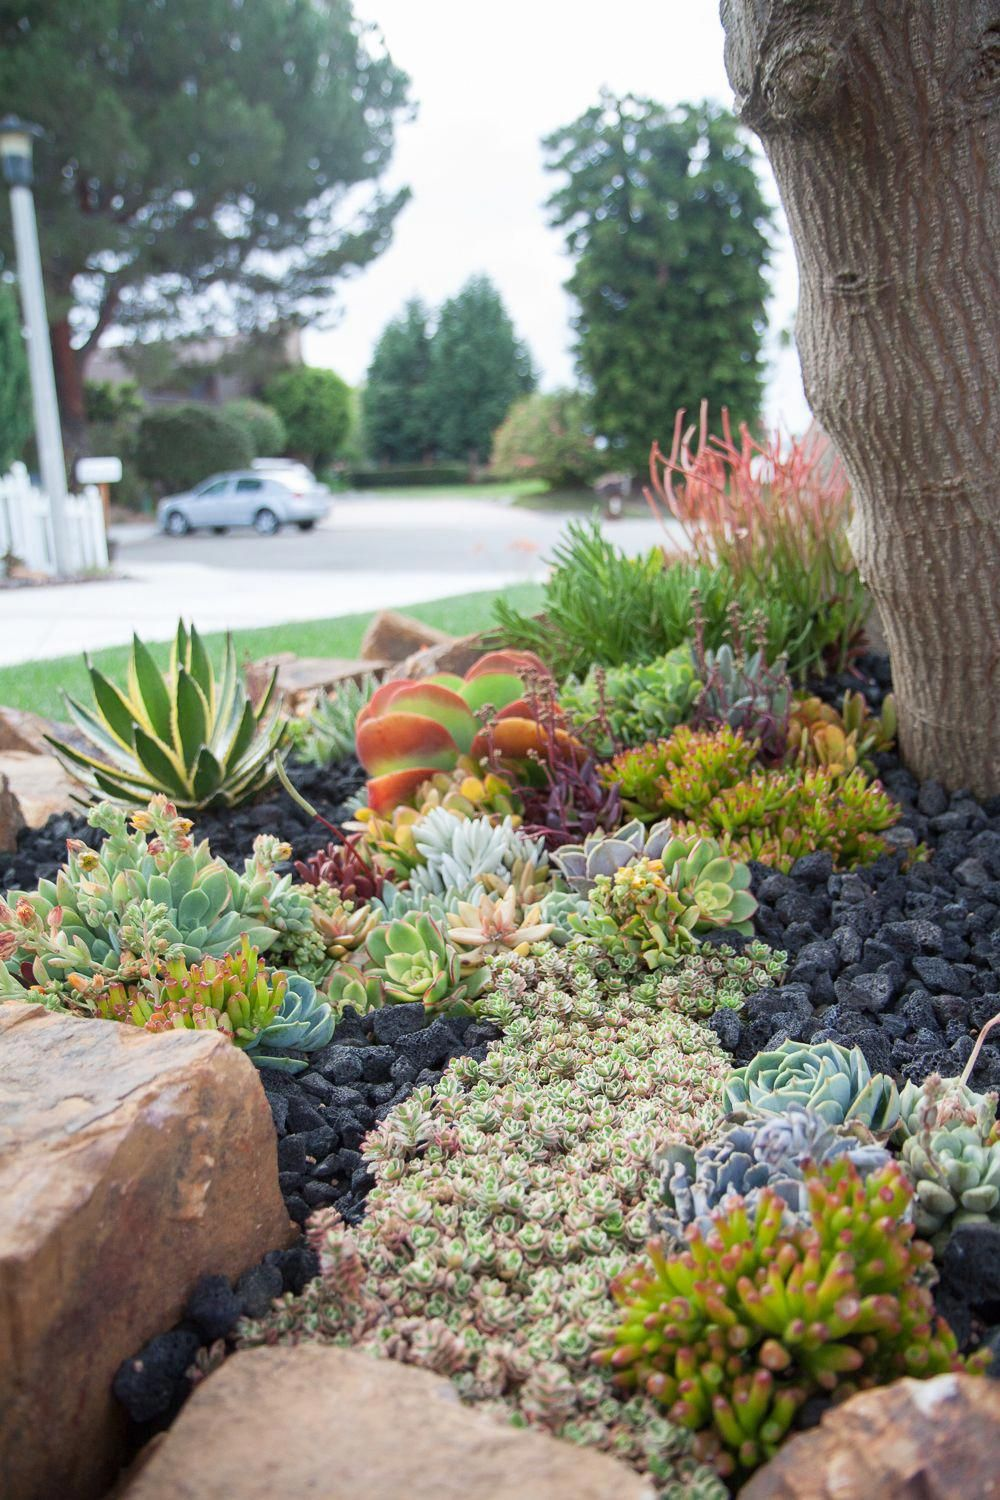 Pin By Tia Knuth On School Garden In 2020 Succulent Landscaping